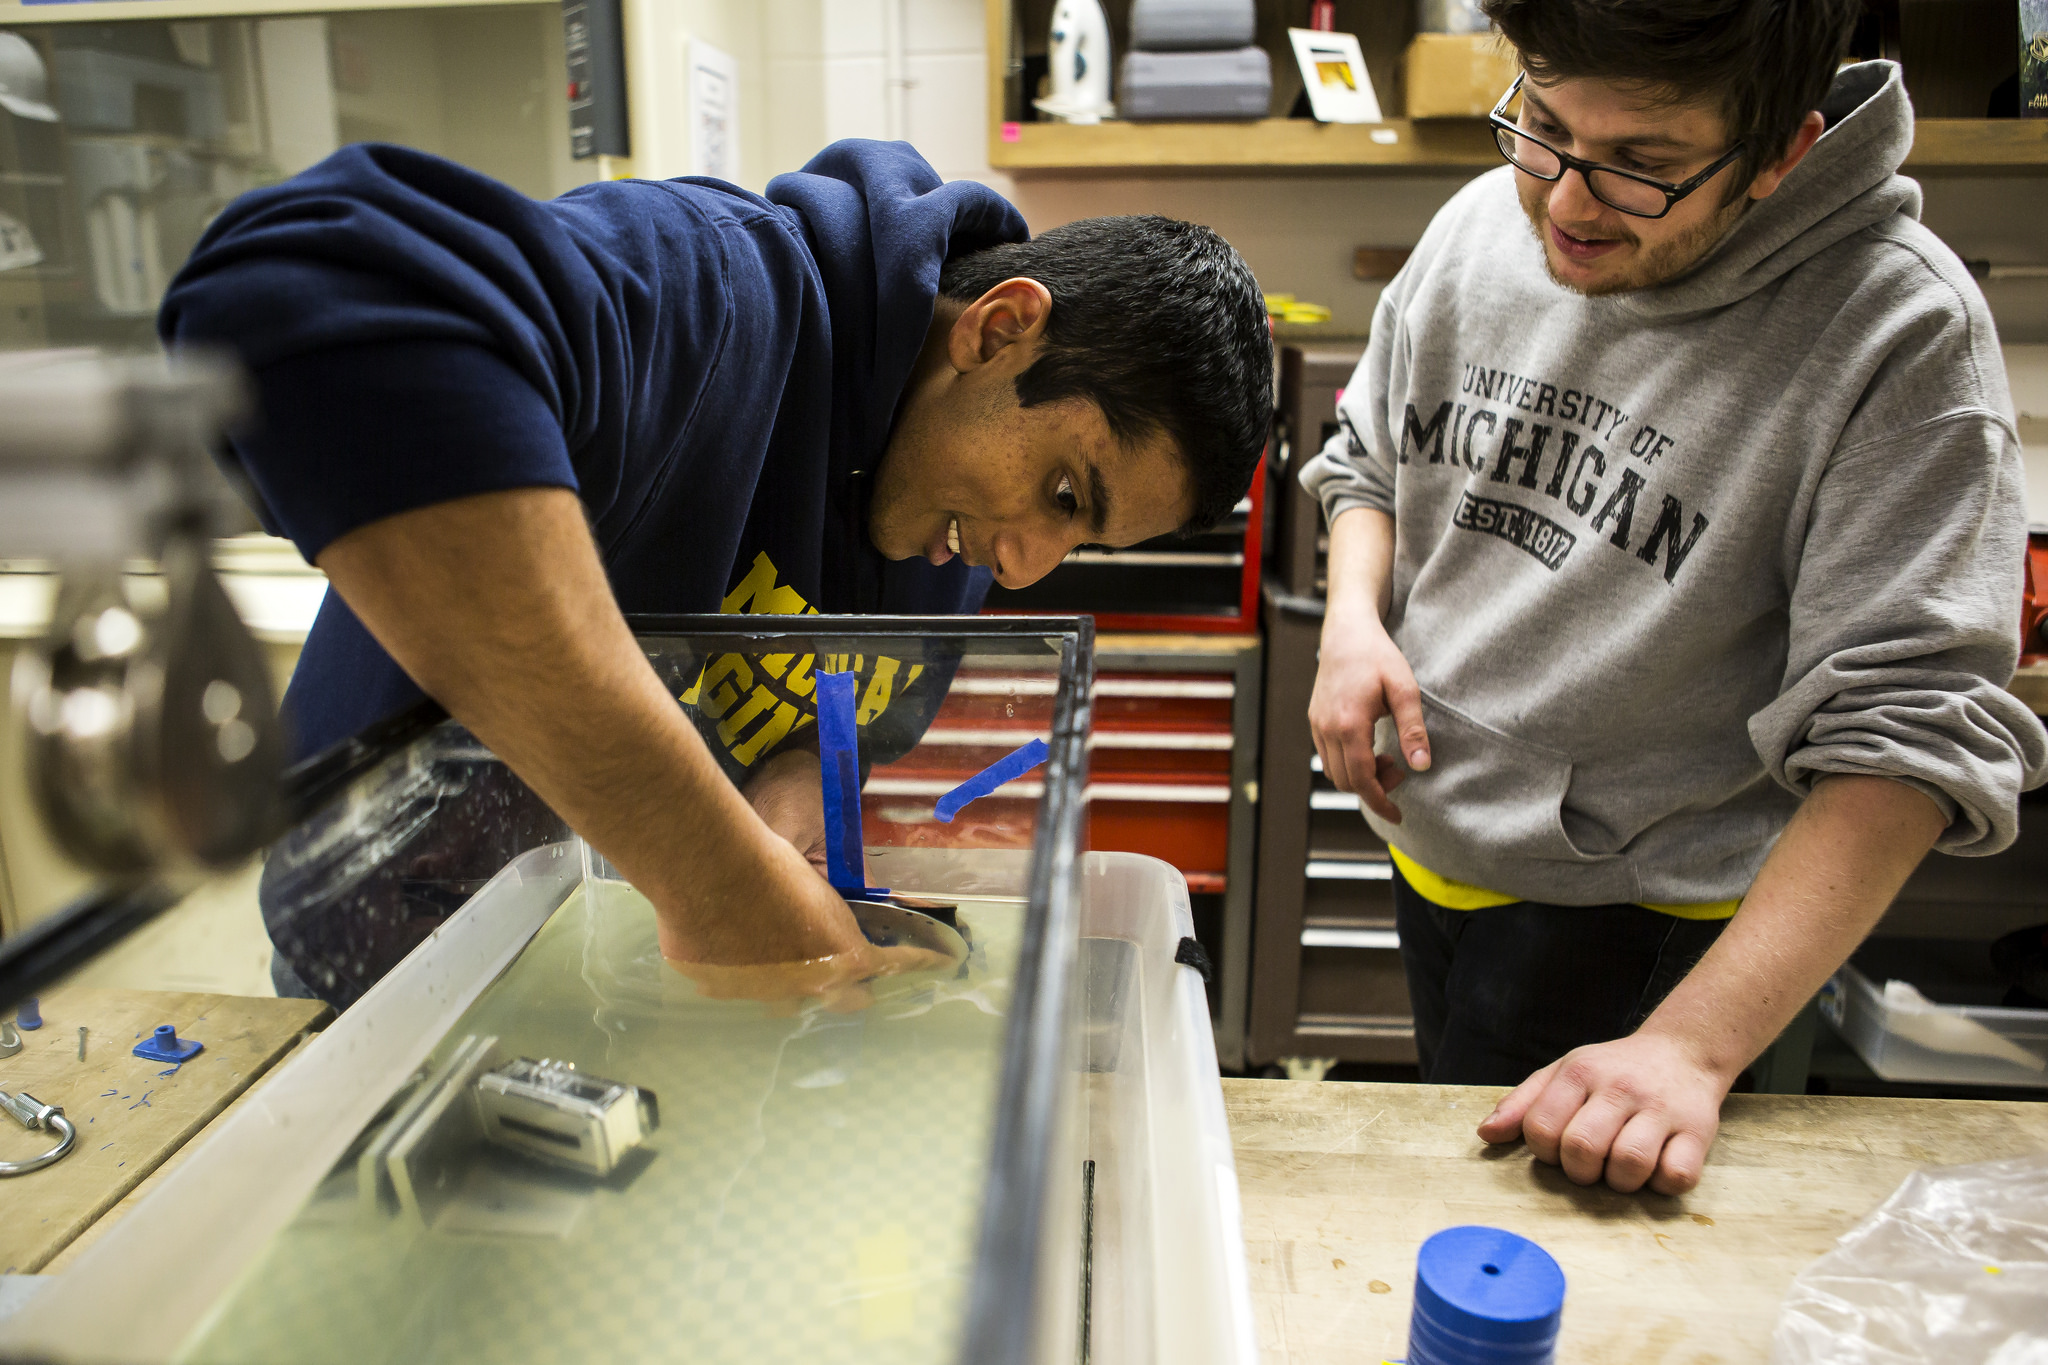 Siju Varughese, EE BSE Student, helps Steve West, AERO BSE Student, test the structure of small scale satellites (pico and femto sats) in the Space Research Building. Image credit: Joseph Xu, Michigan Engineering